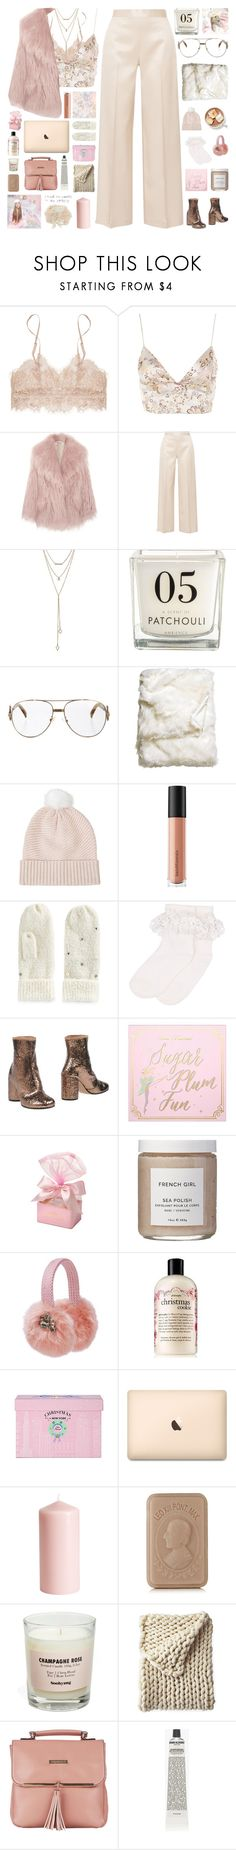 """""""girly winter style ♡"""" by my-pink-wings ❤ liked on Polyvore featuring WYLDR, Miu Miu, The Row, SUGARFIX by BaubleBar, Fendi, H&M, Topshop, Bare Escentuals, SO and Monsoon"""